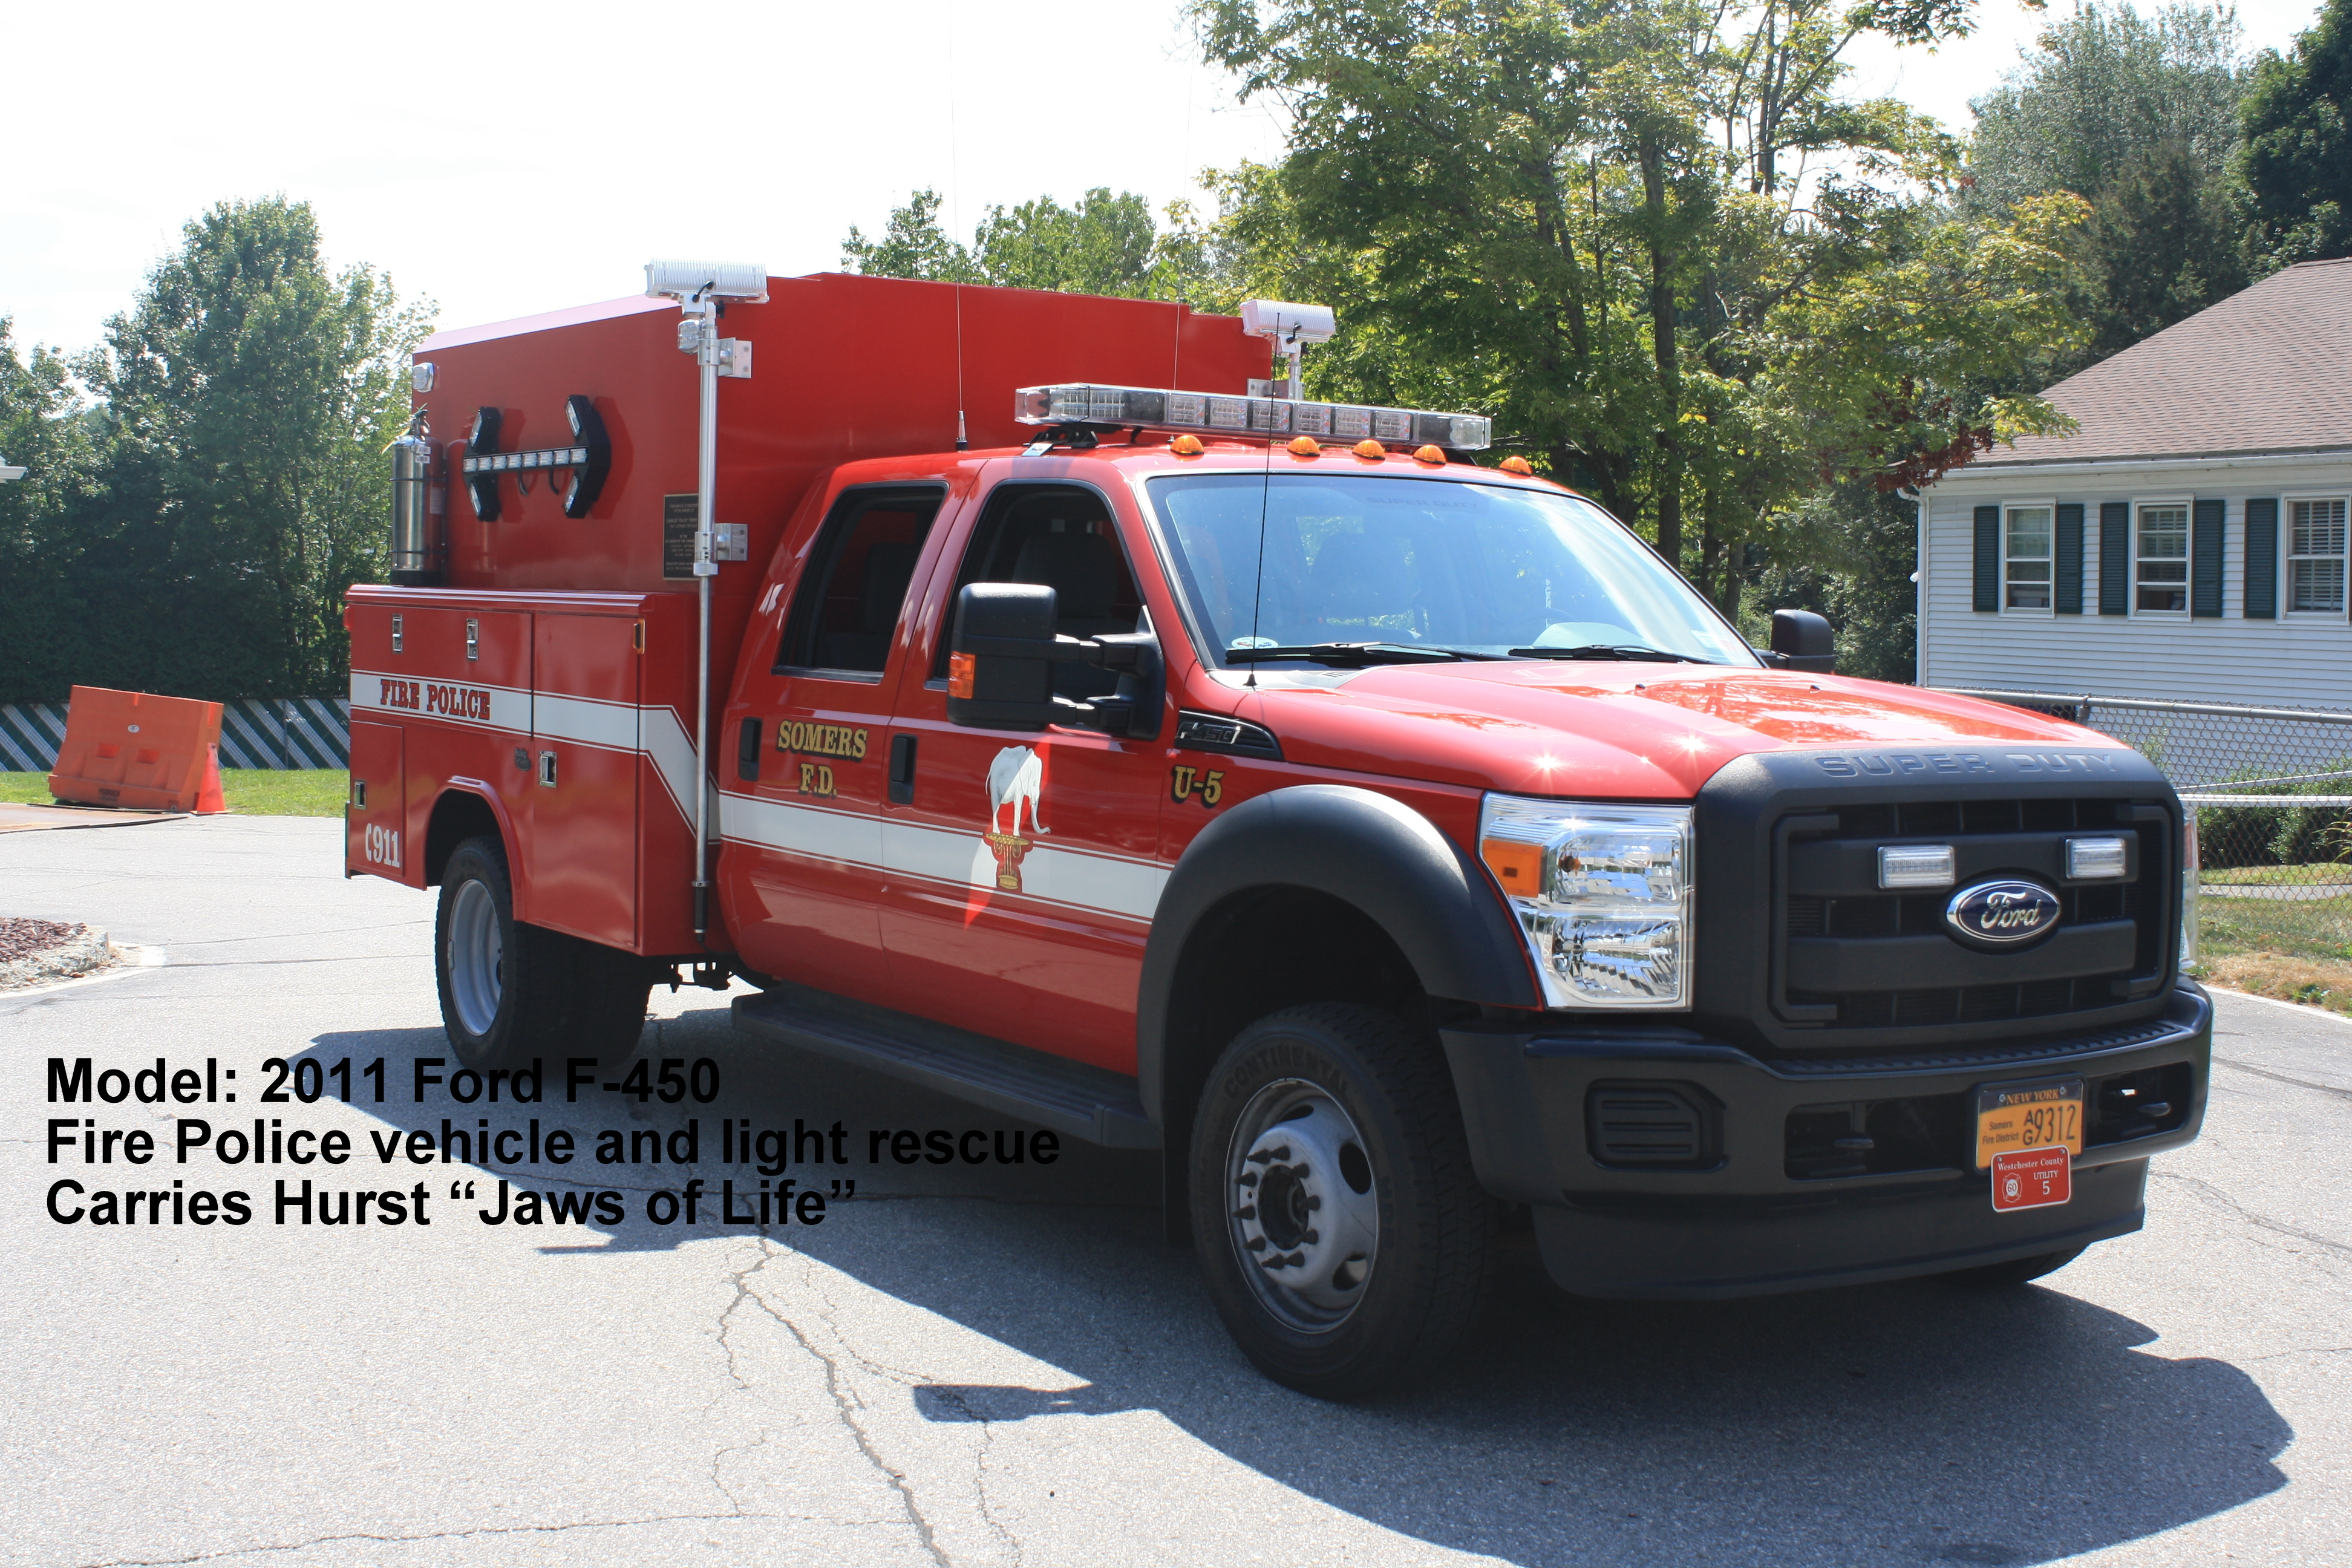 Somers Fire District NY U-5 Fire Police 2